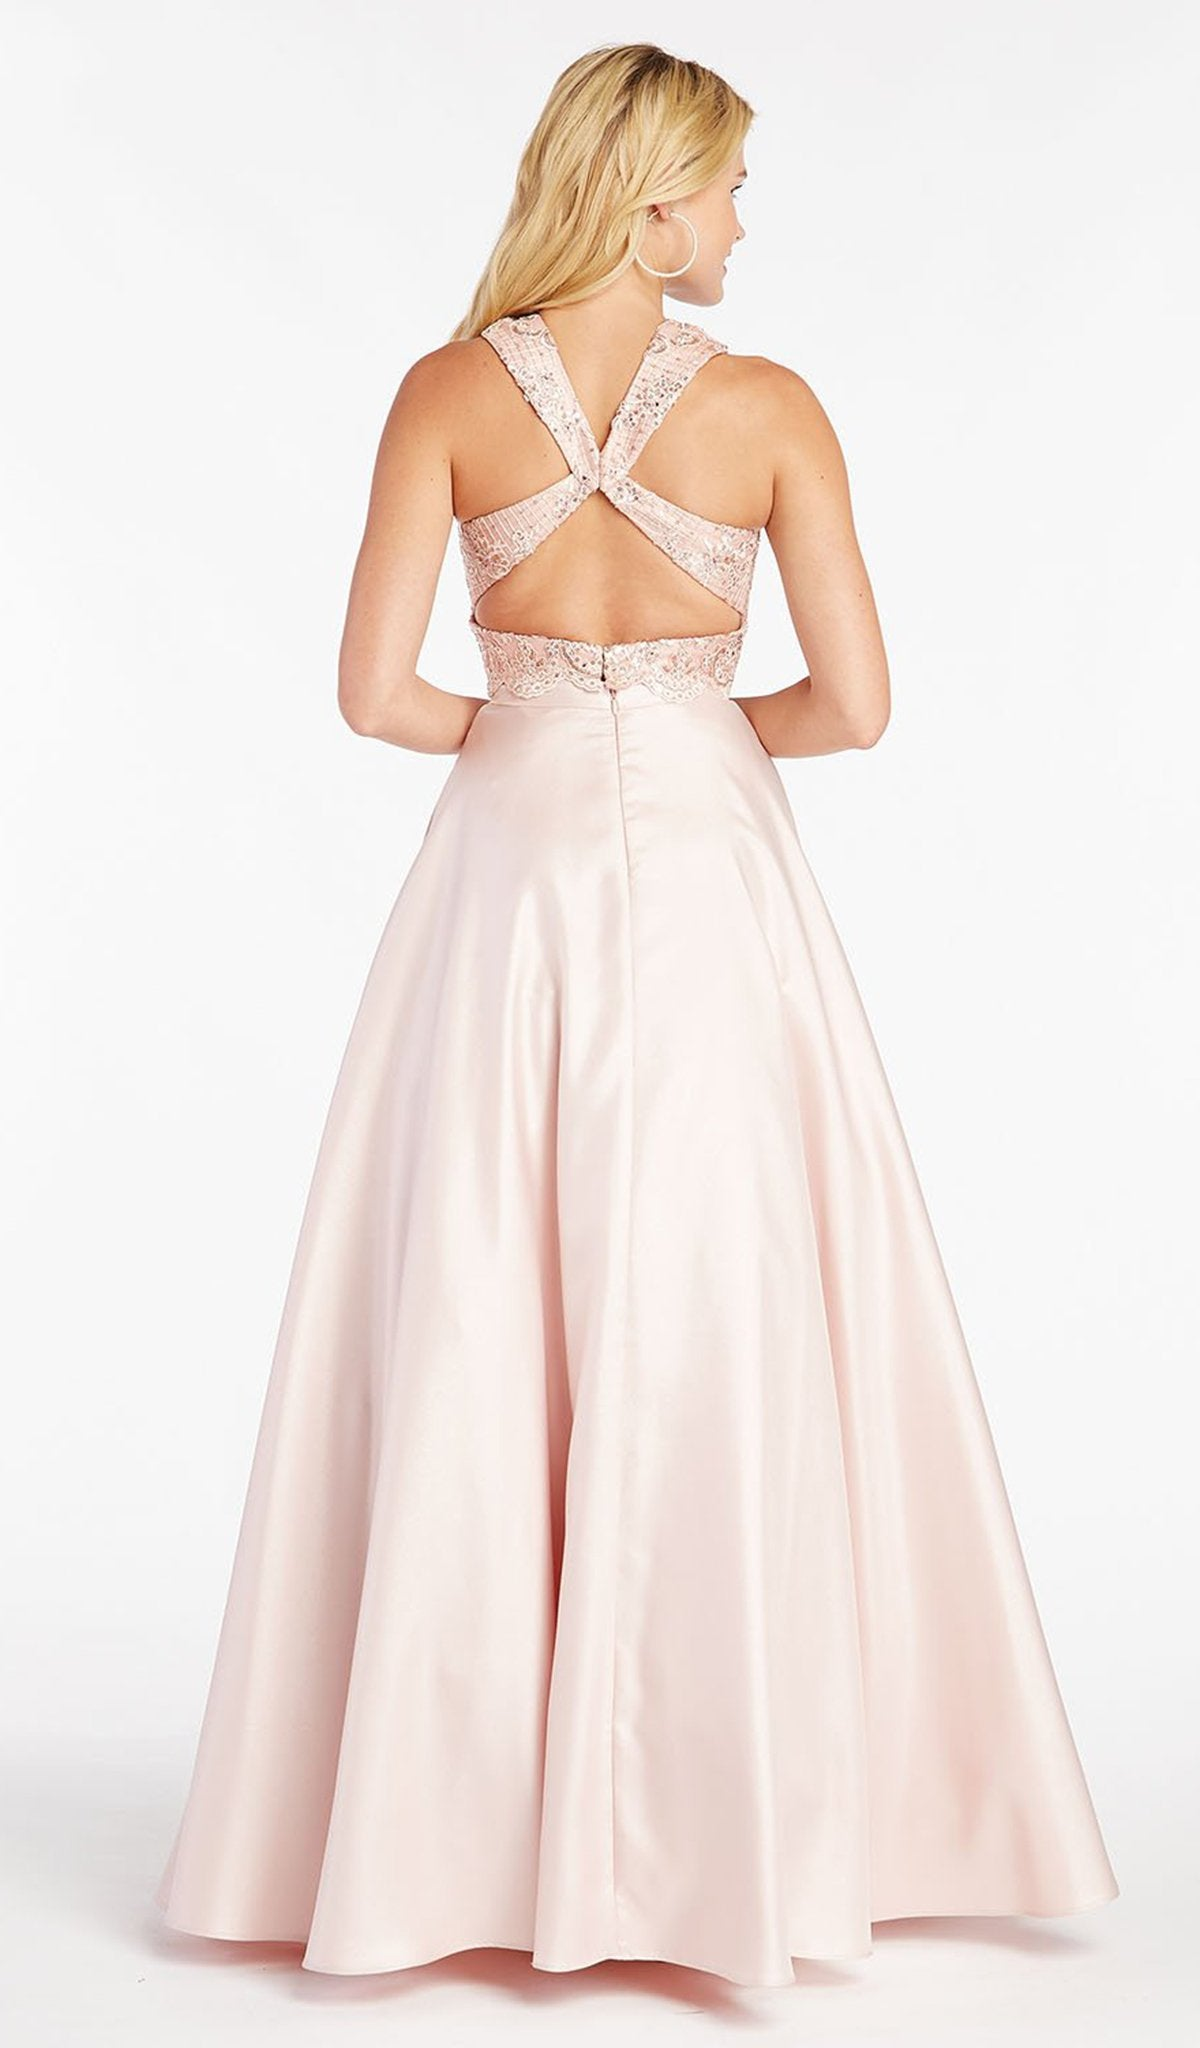 Alyce Paris - 60371 Shimmer Mikado Folded High Collar A-Line Gown In Pink